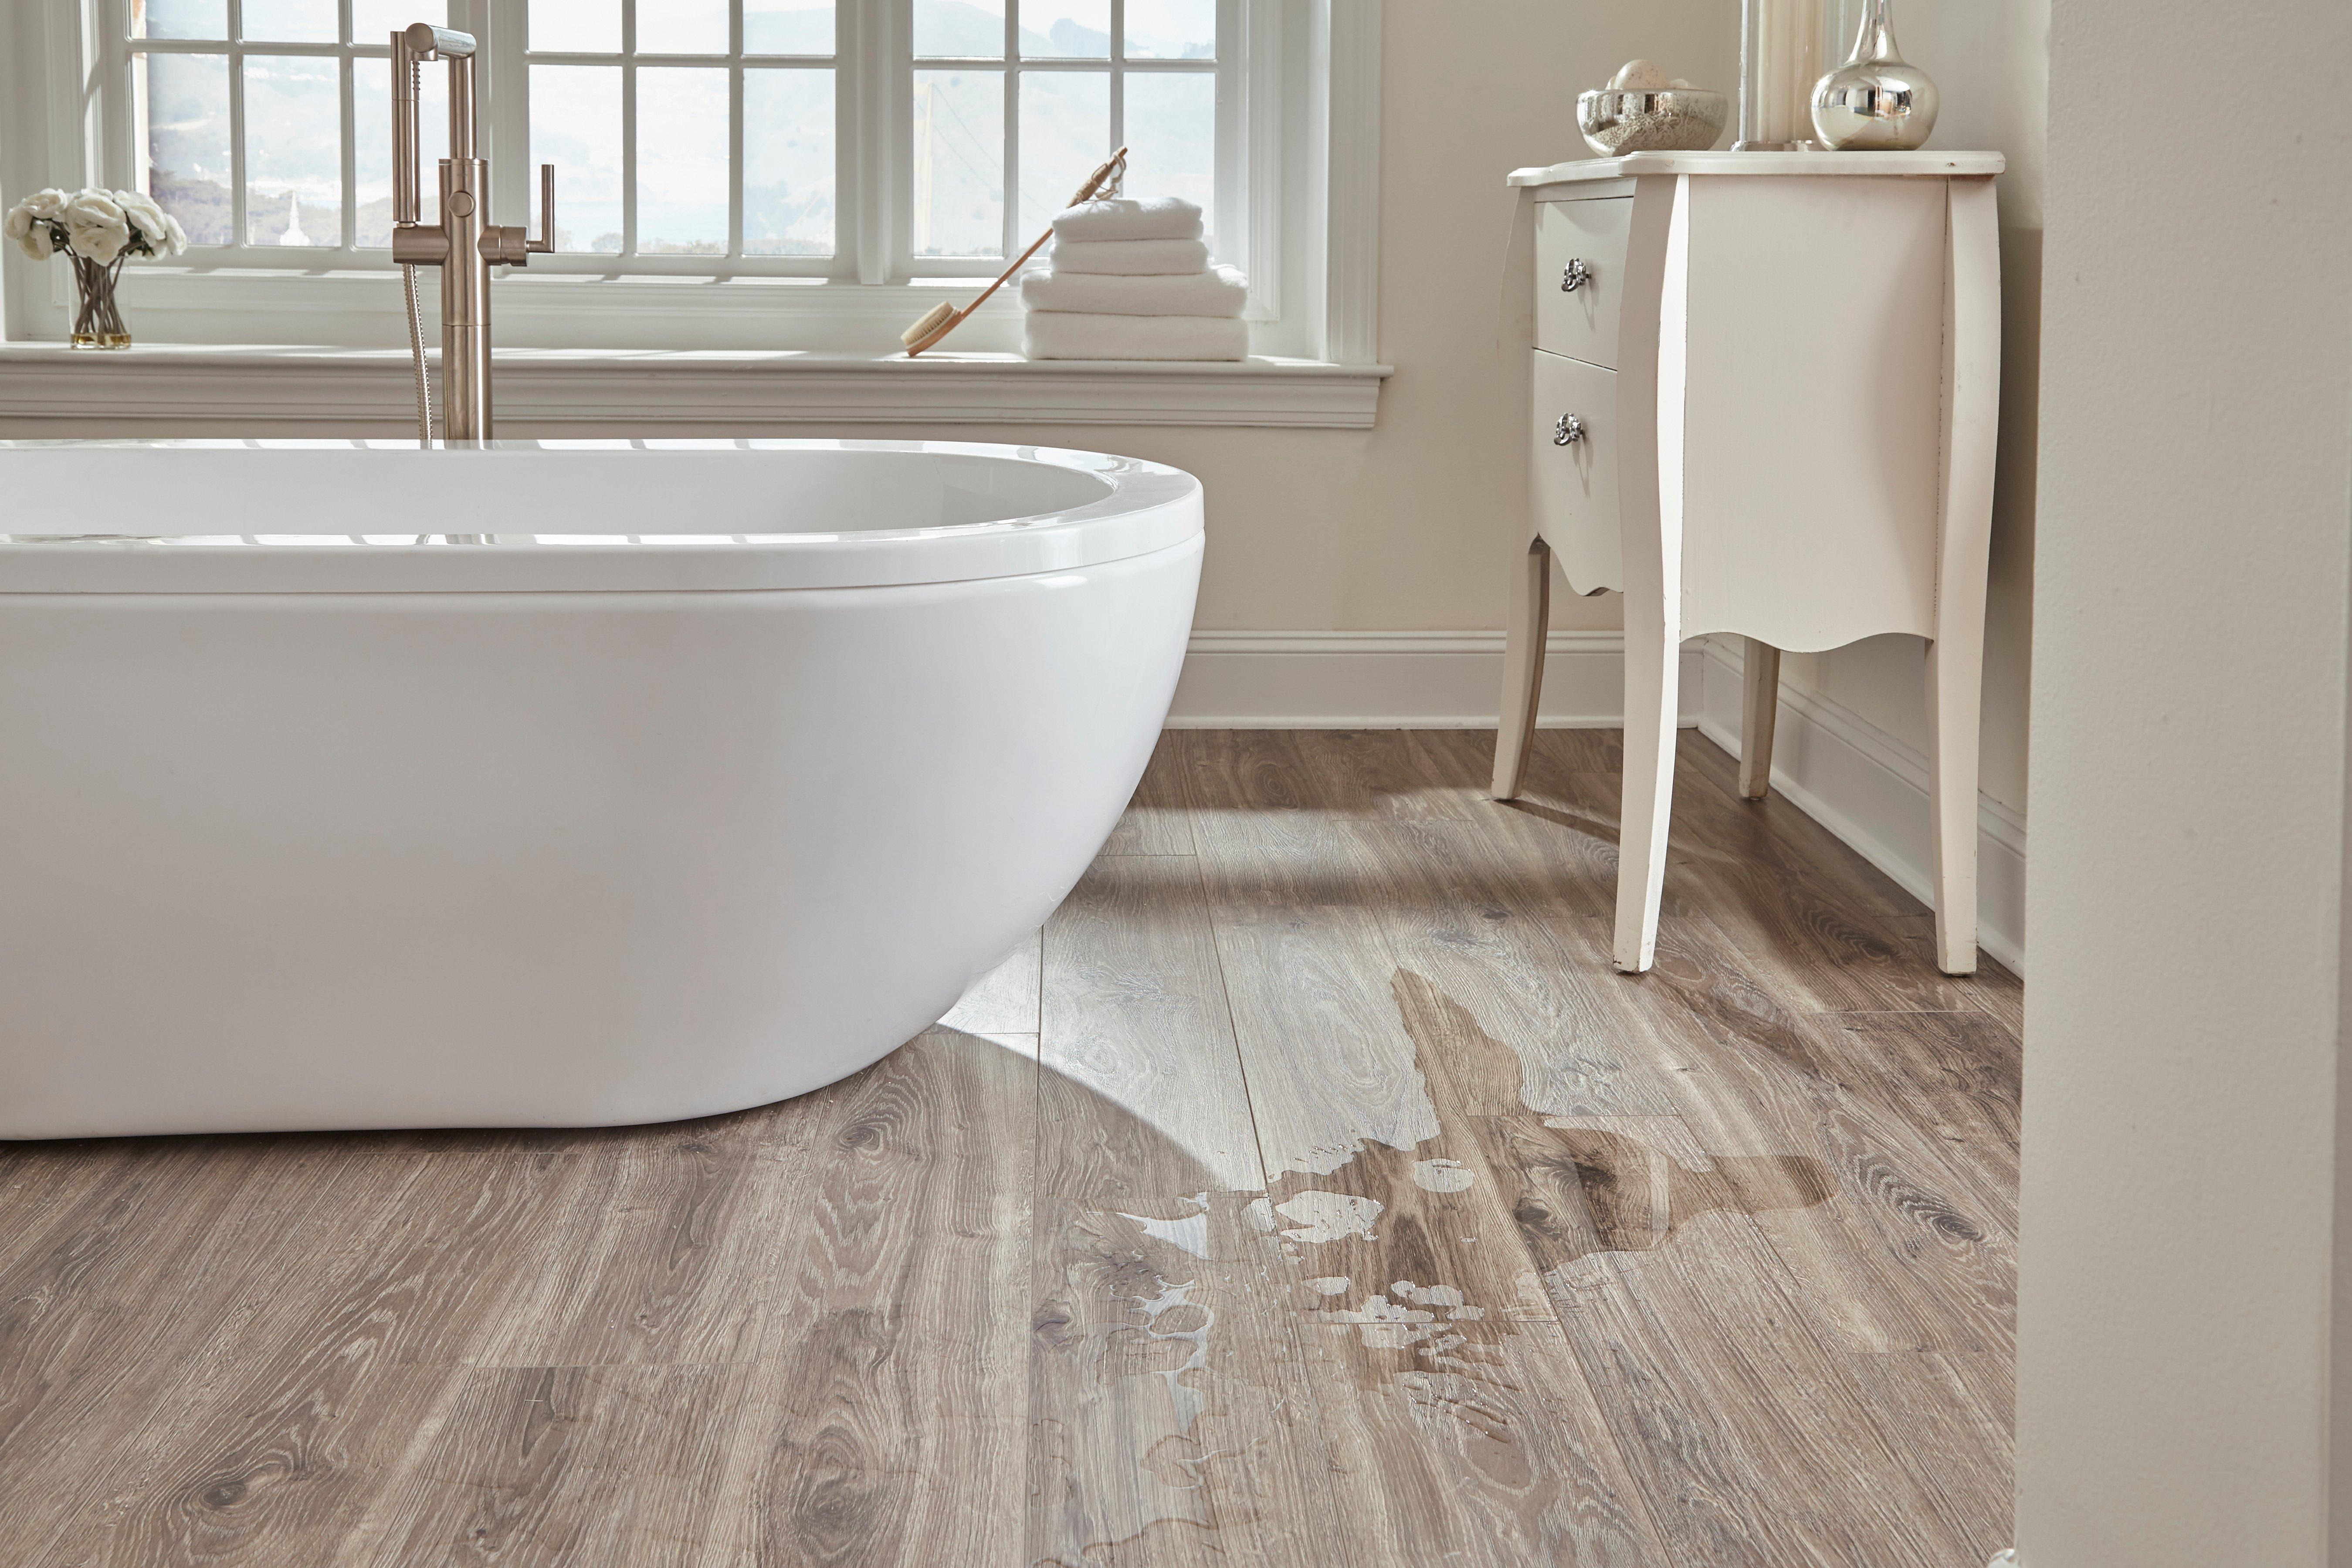 ... Water Resistant 2: Xaquaguard Smoky Dusk Water Resistant Laminate  Bathroom Floor Closeup Room ...